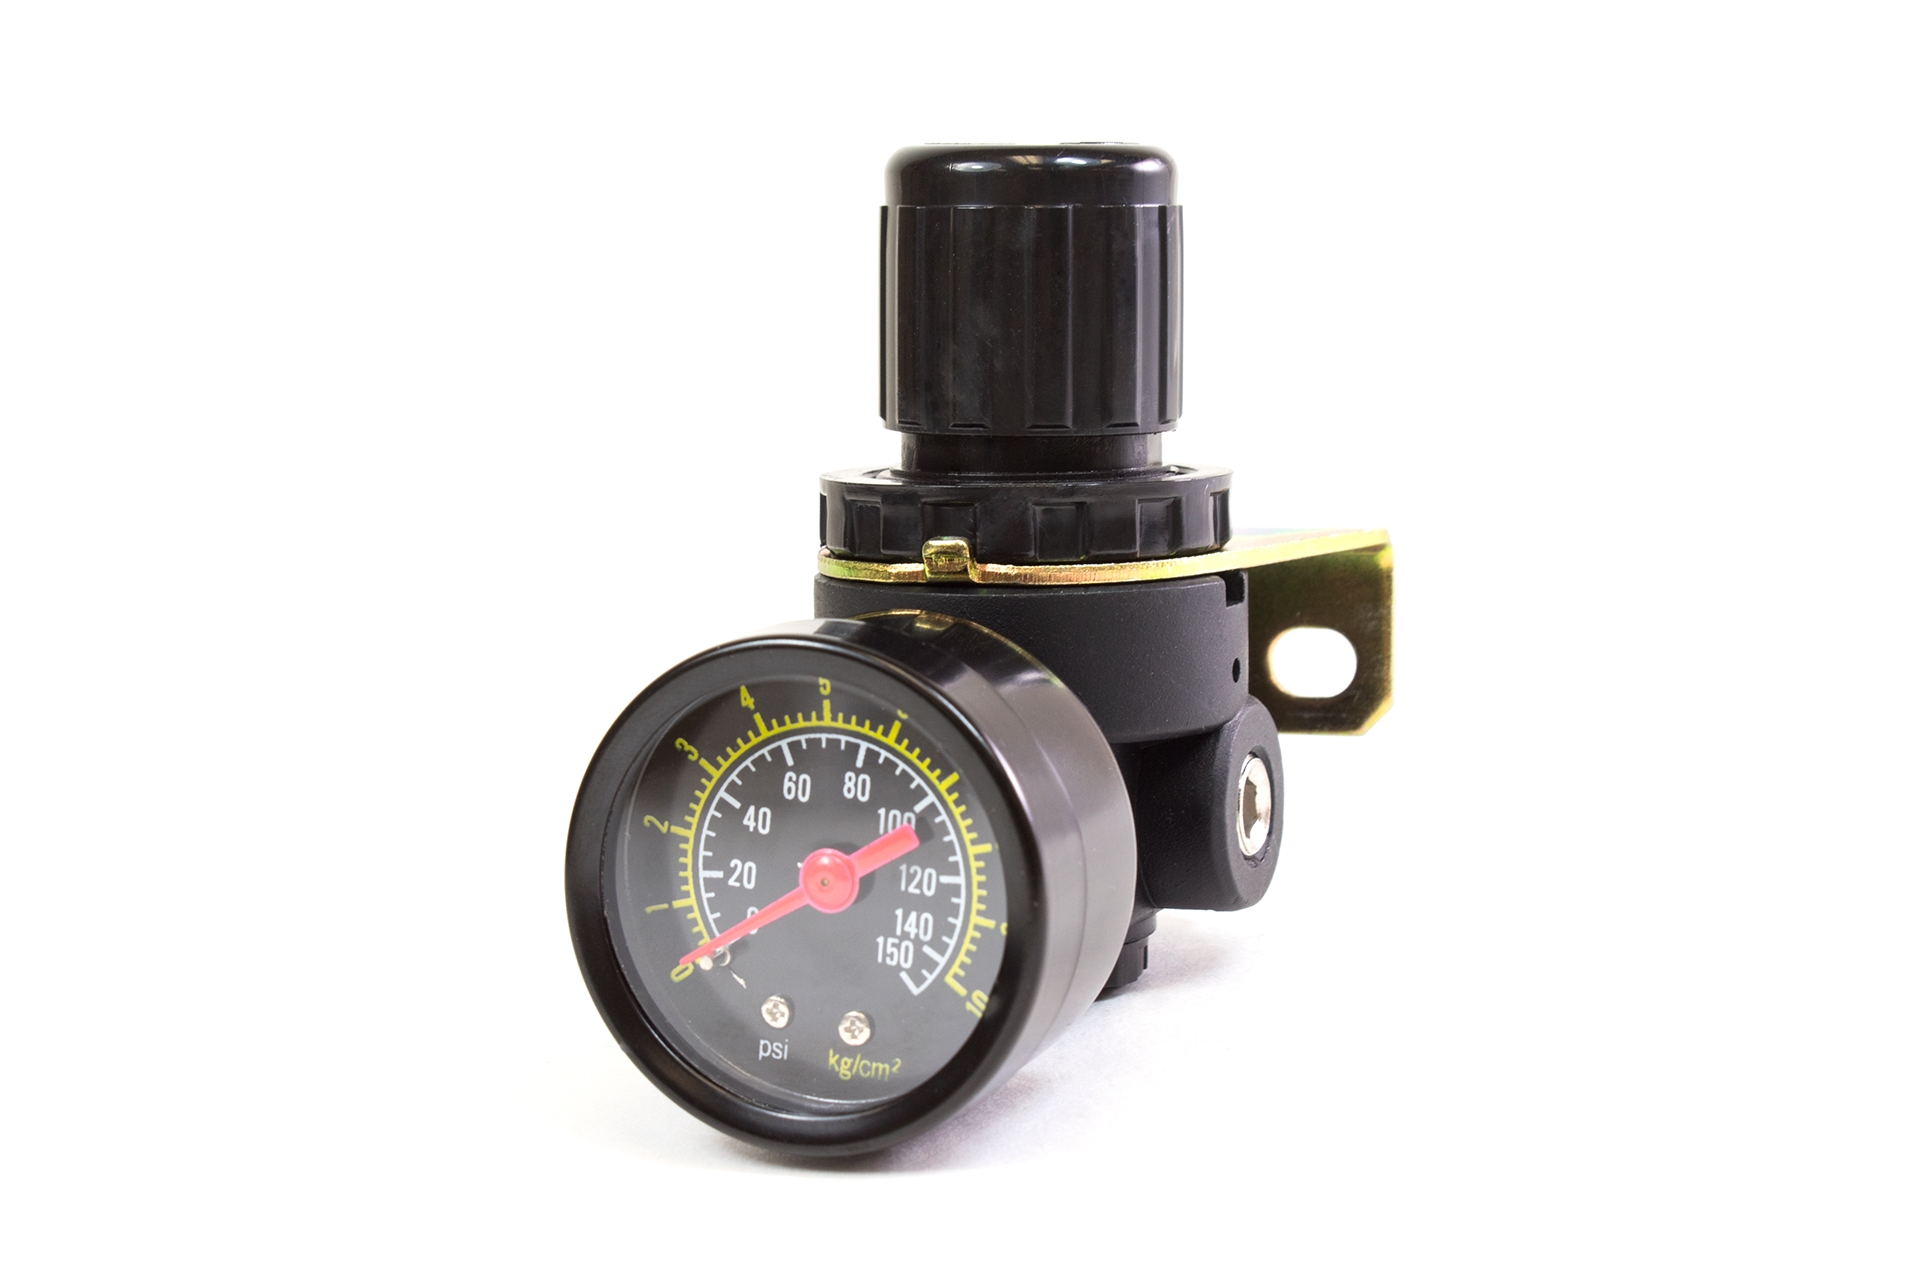 Regulator / Gauge